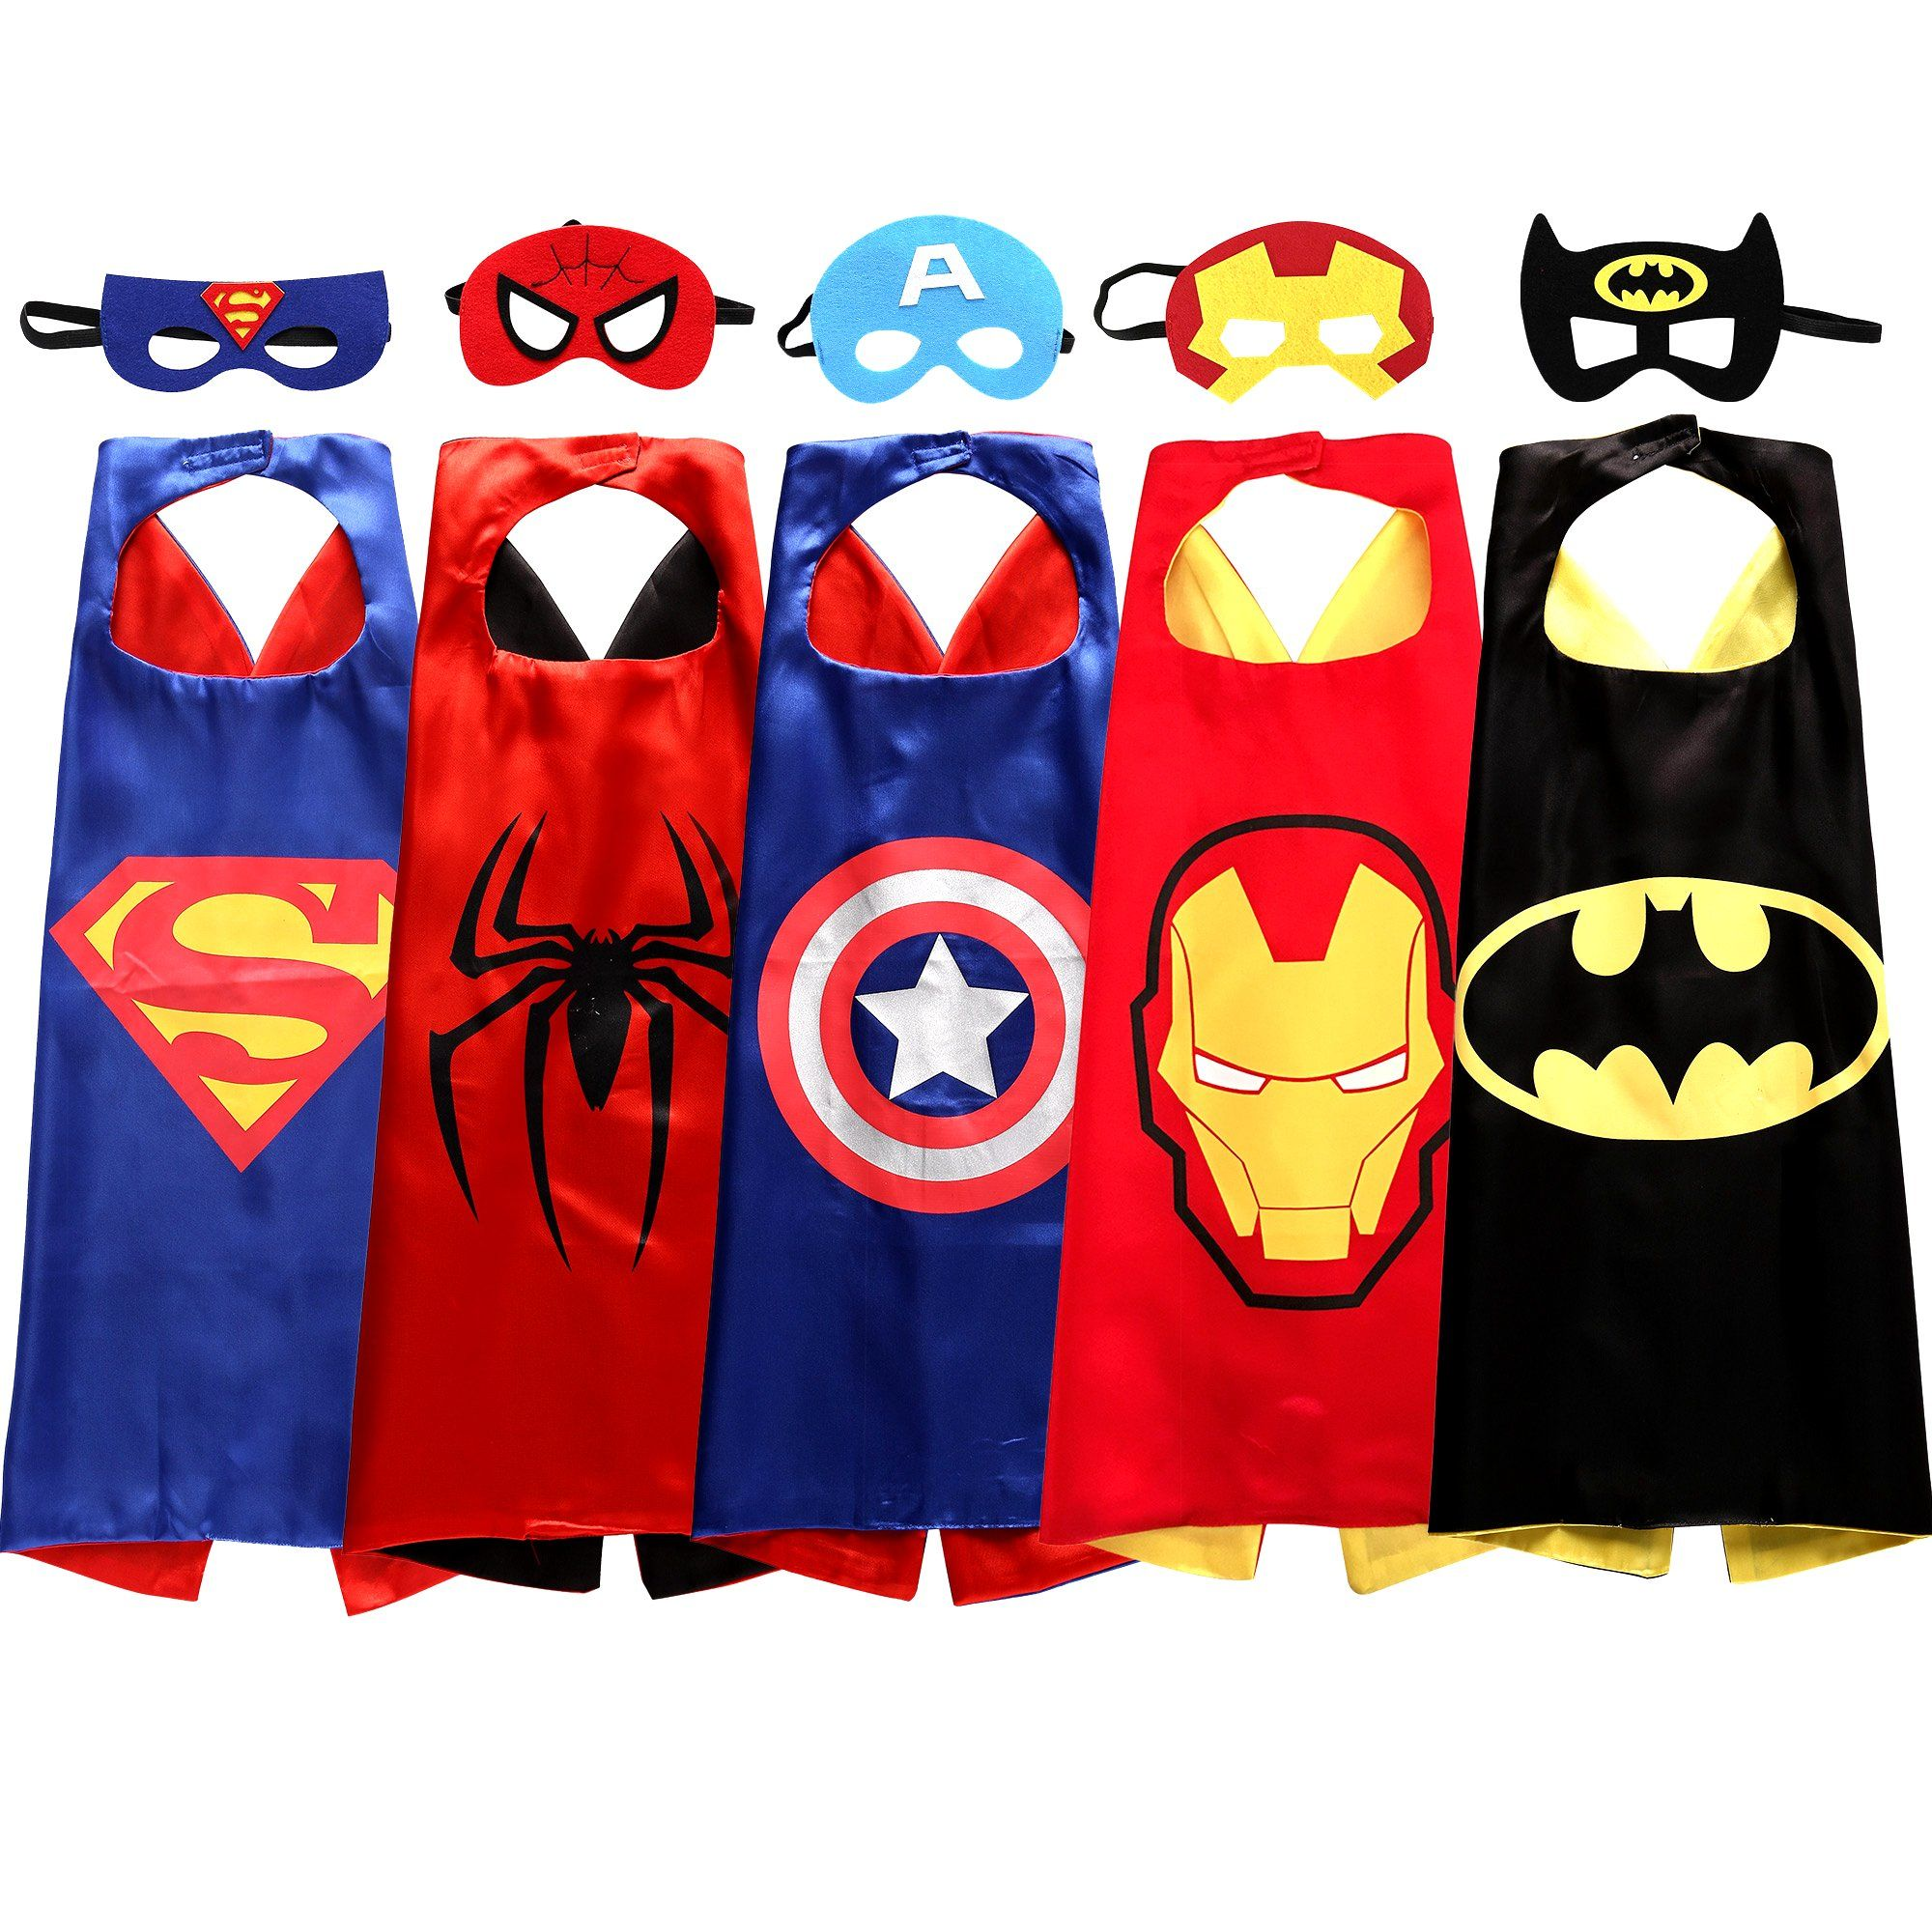 Special 18*14 Cm Plain Superhero Masks Felt Double-sided Cosplay Masks Costumes Party Masks For Girls Easter Gifts Baby Toys Comfortable And Easy To Wear Kids Costumes & Accessories